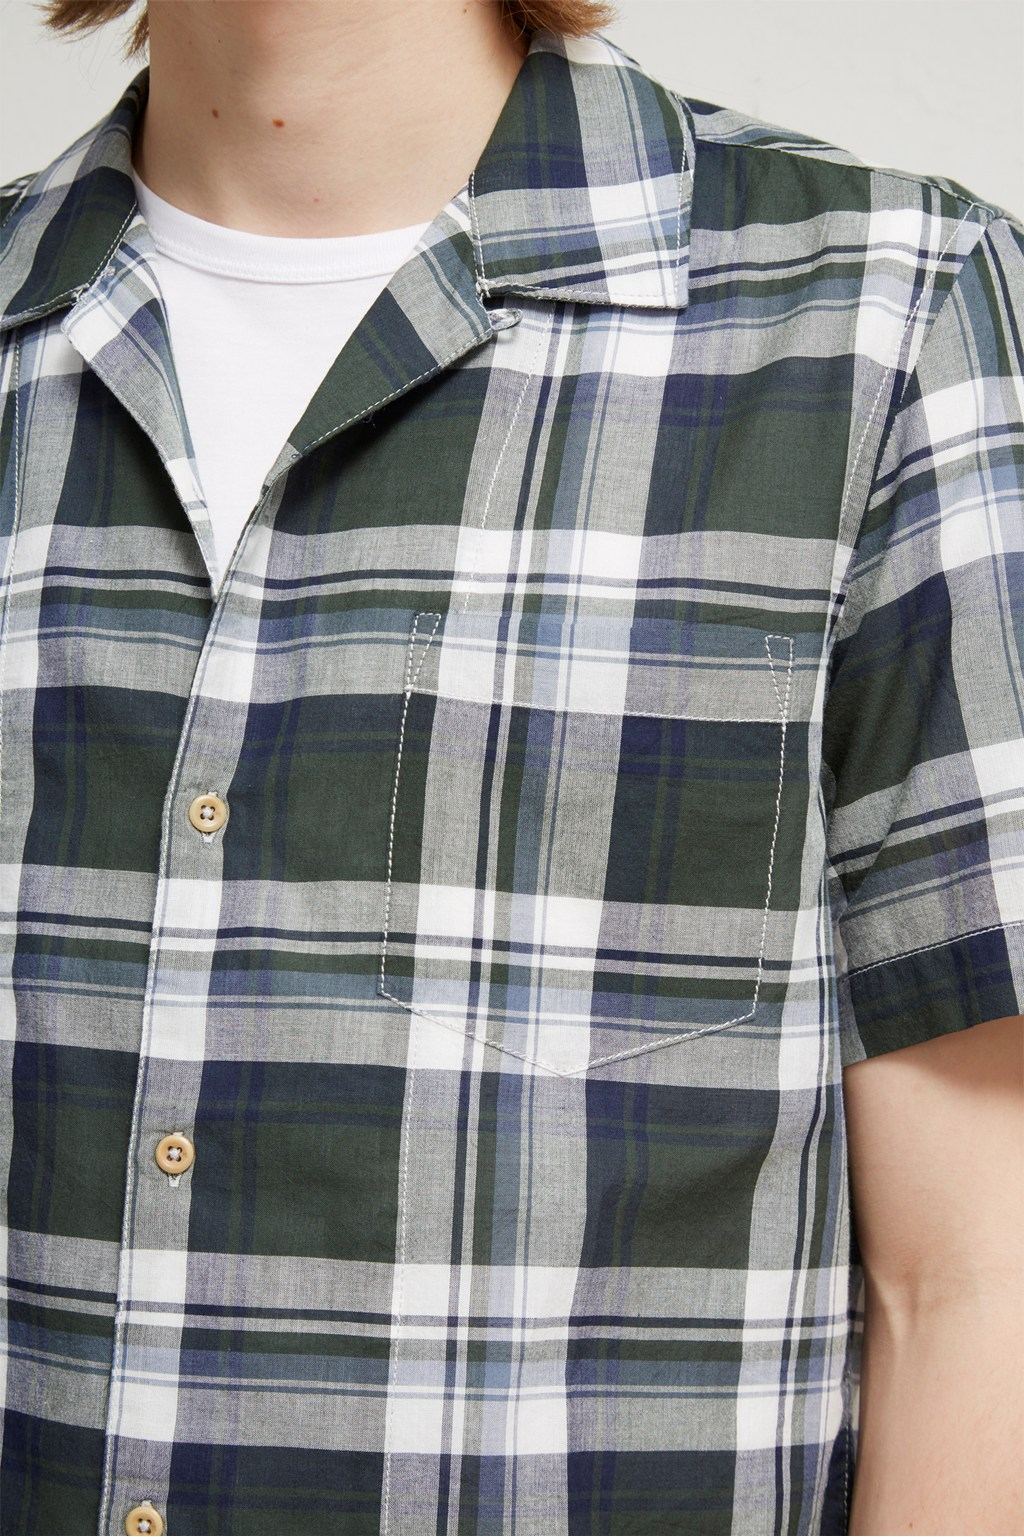 bcc615f12 Overwashed Lawn Check Shirt | Dress To Impress | French Connection Usa